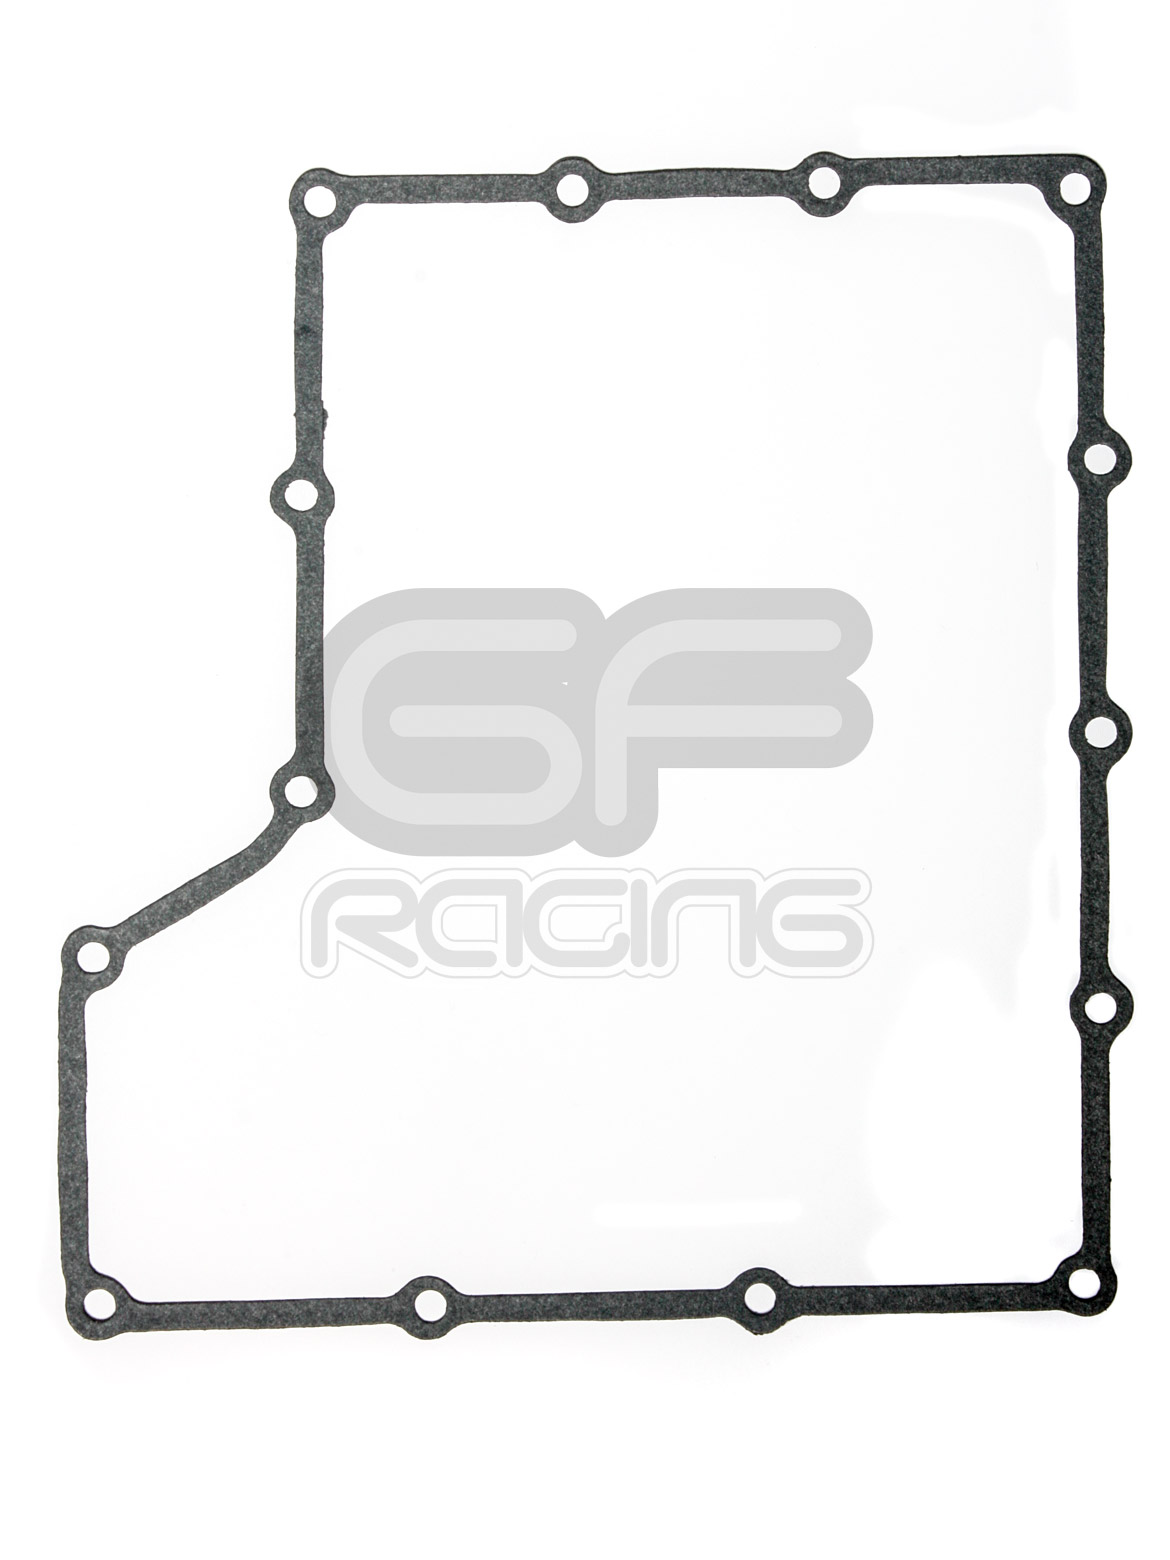 NC 29 clutch cover gasket